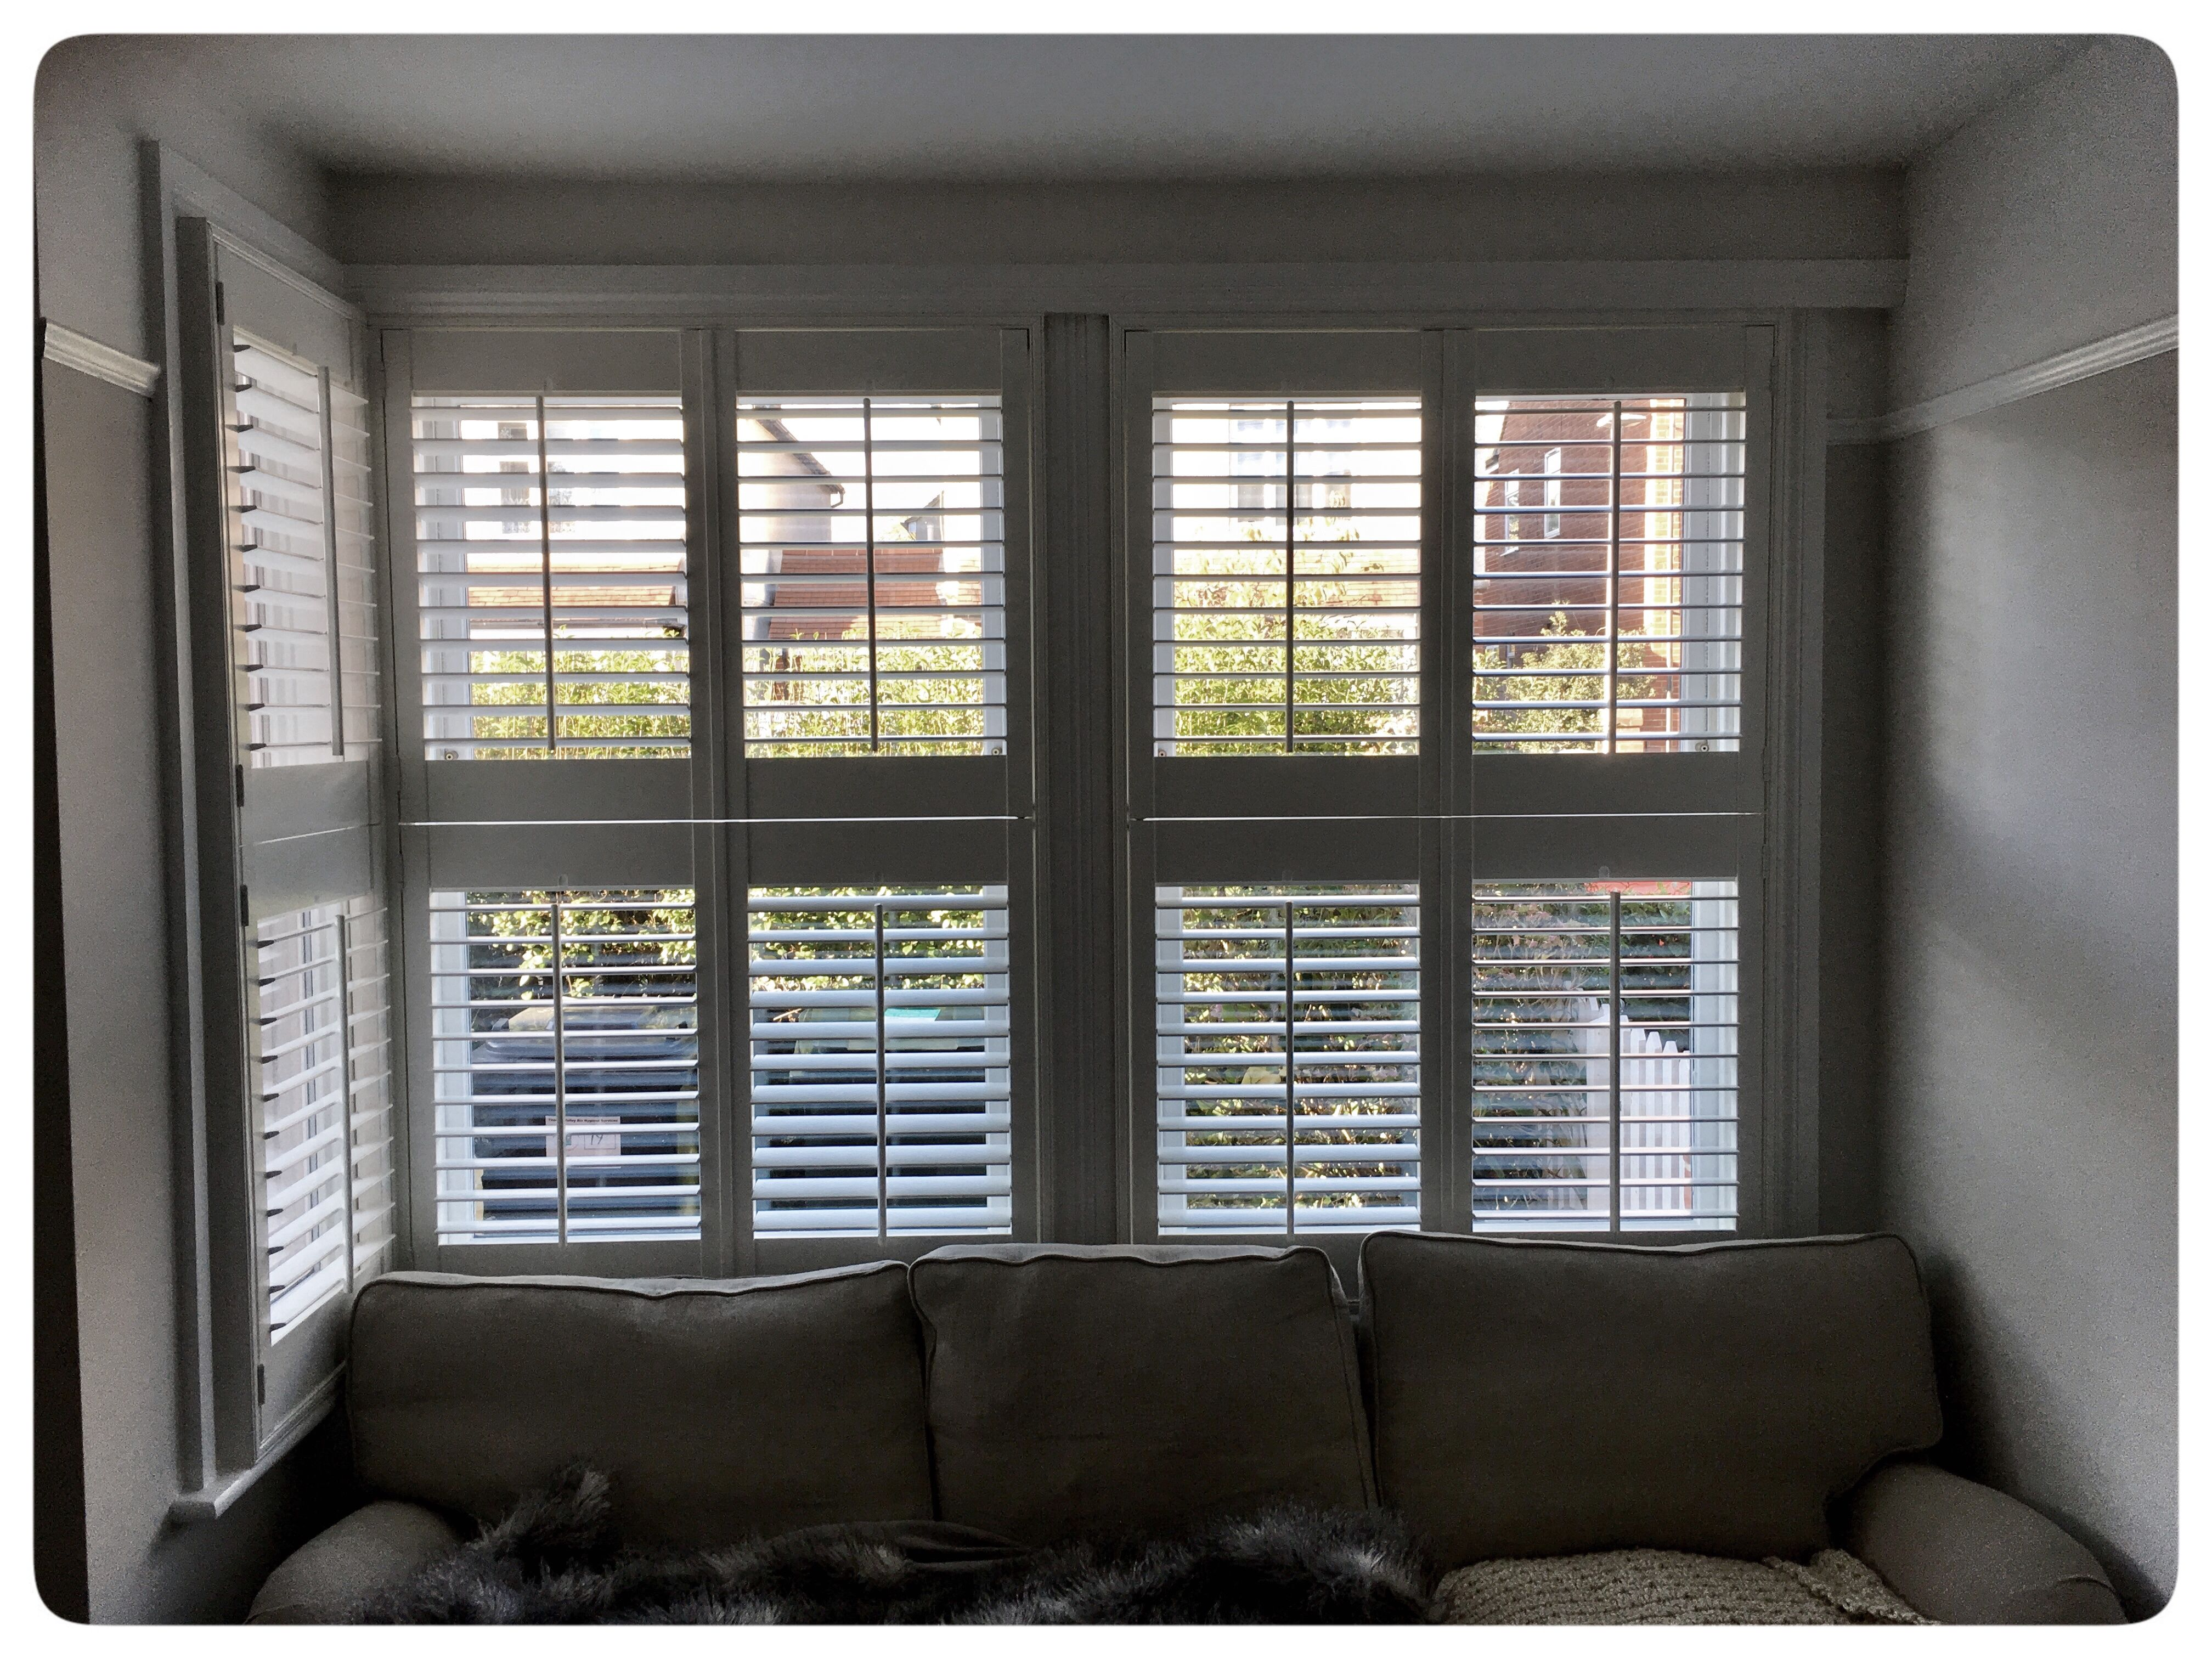 best ss room decors shutters of privacy for sunroom design image bluektchnh sun sunrooms and blinds attractive curtains ideas shades